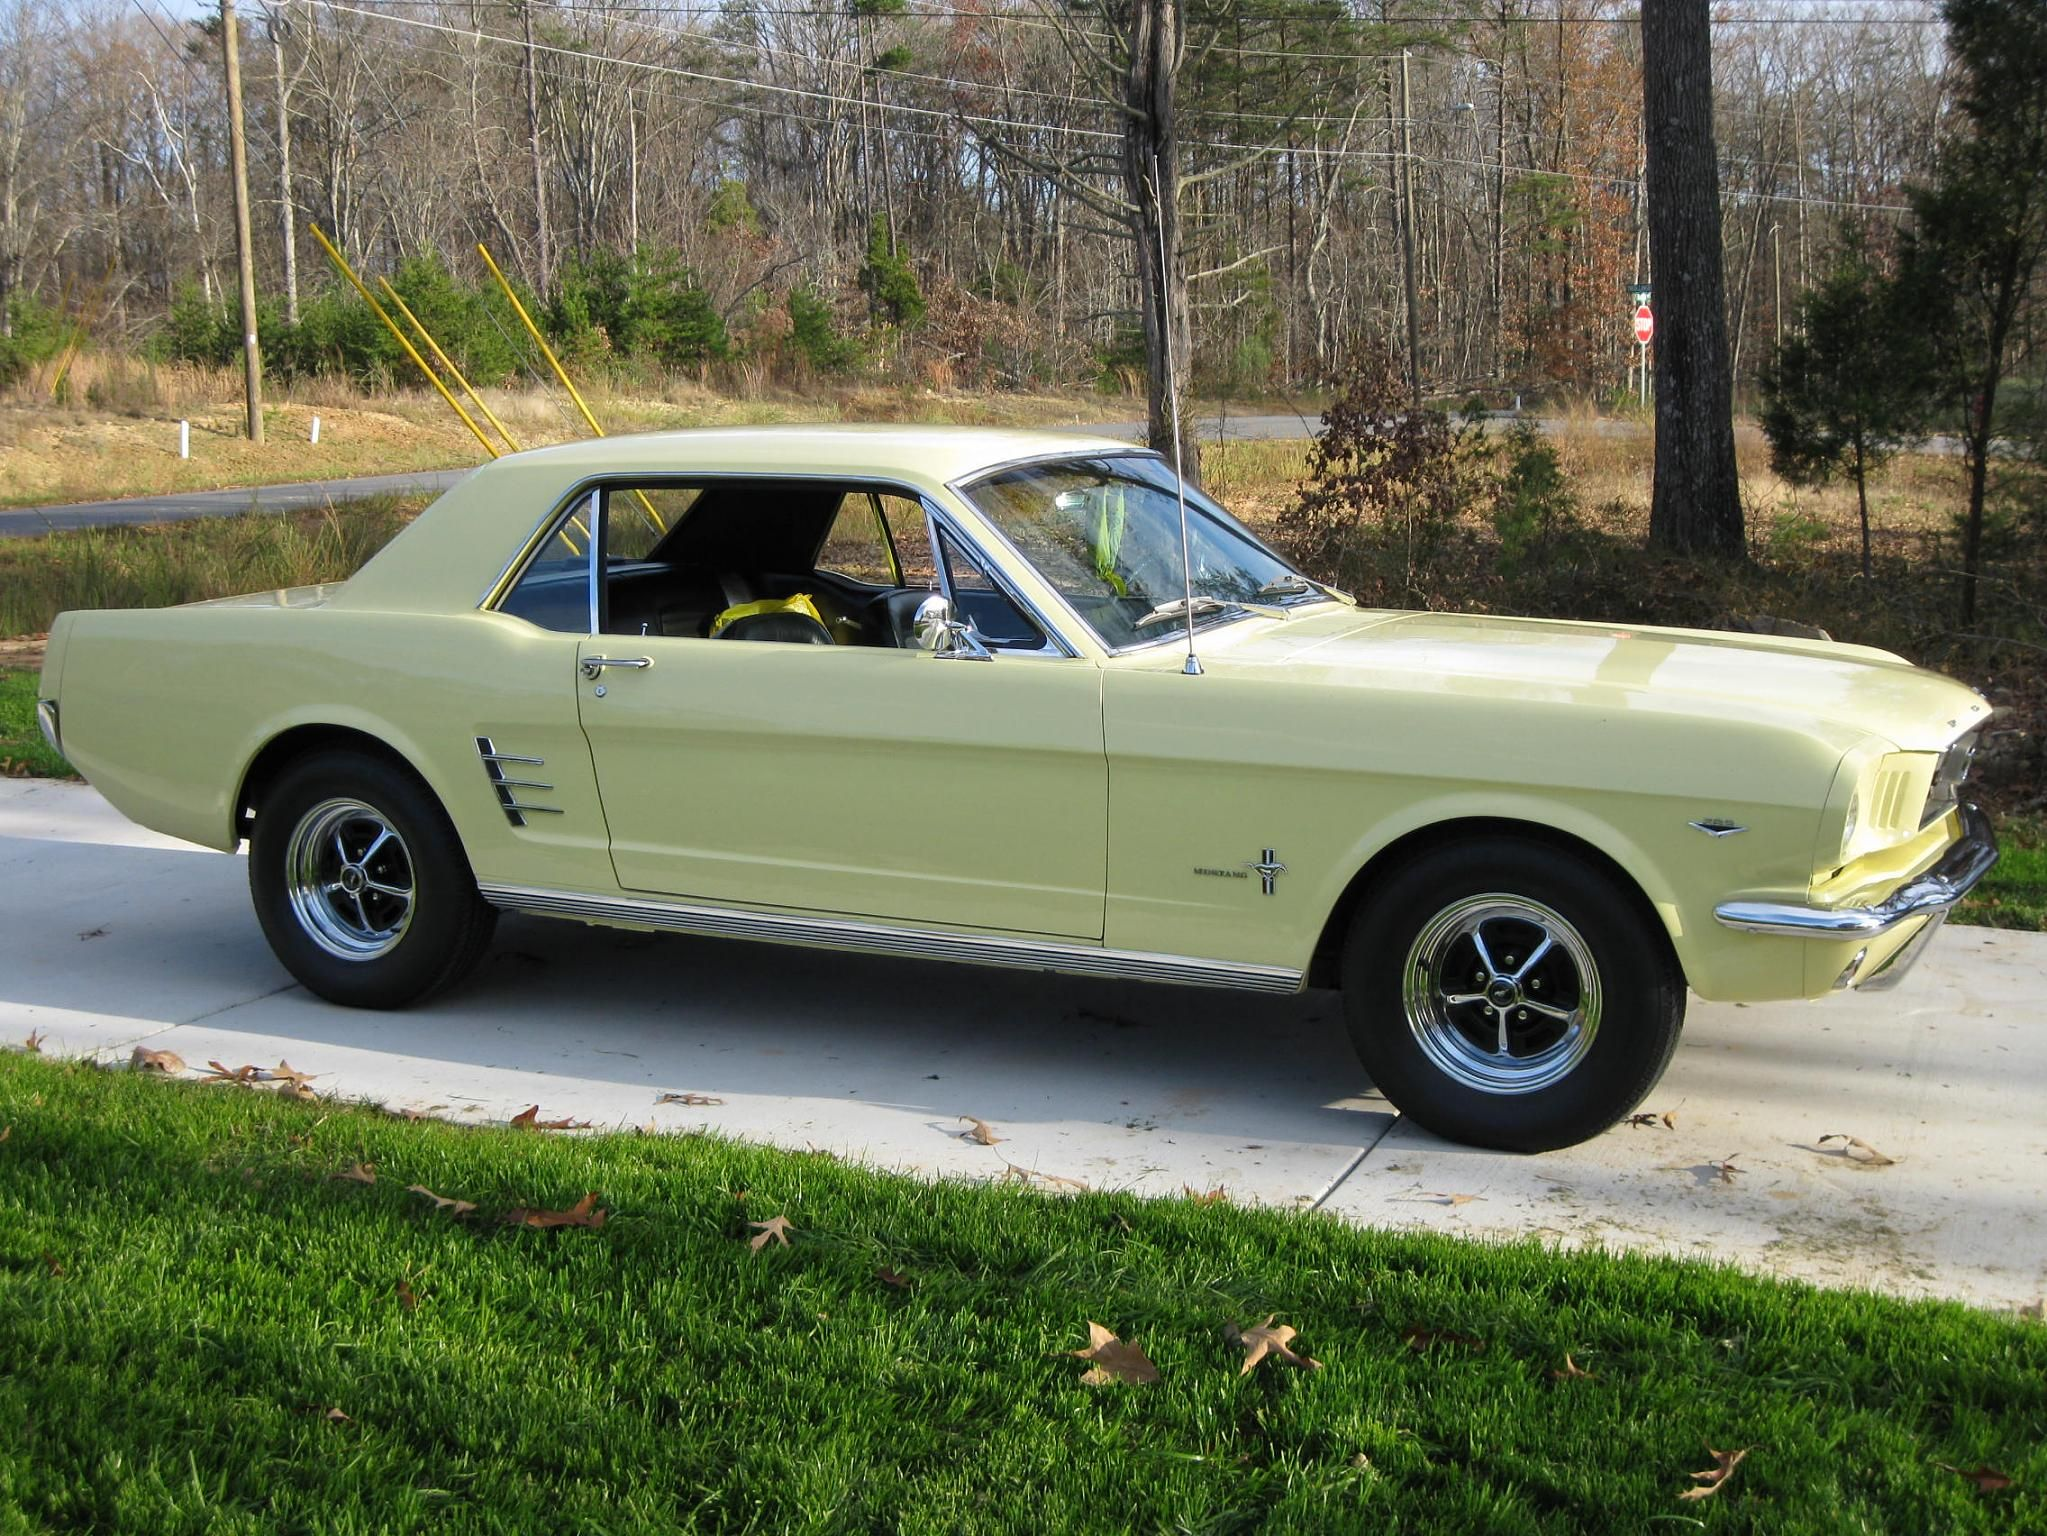 67 ford mustang mustang cars american muscle mustang yellow mustang pony car